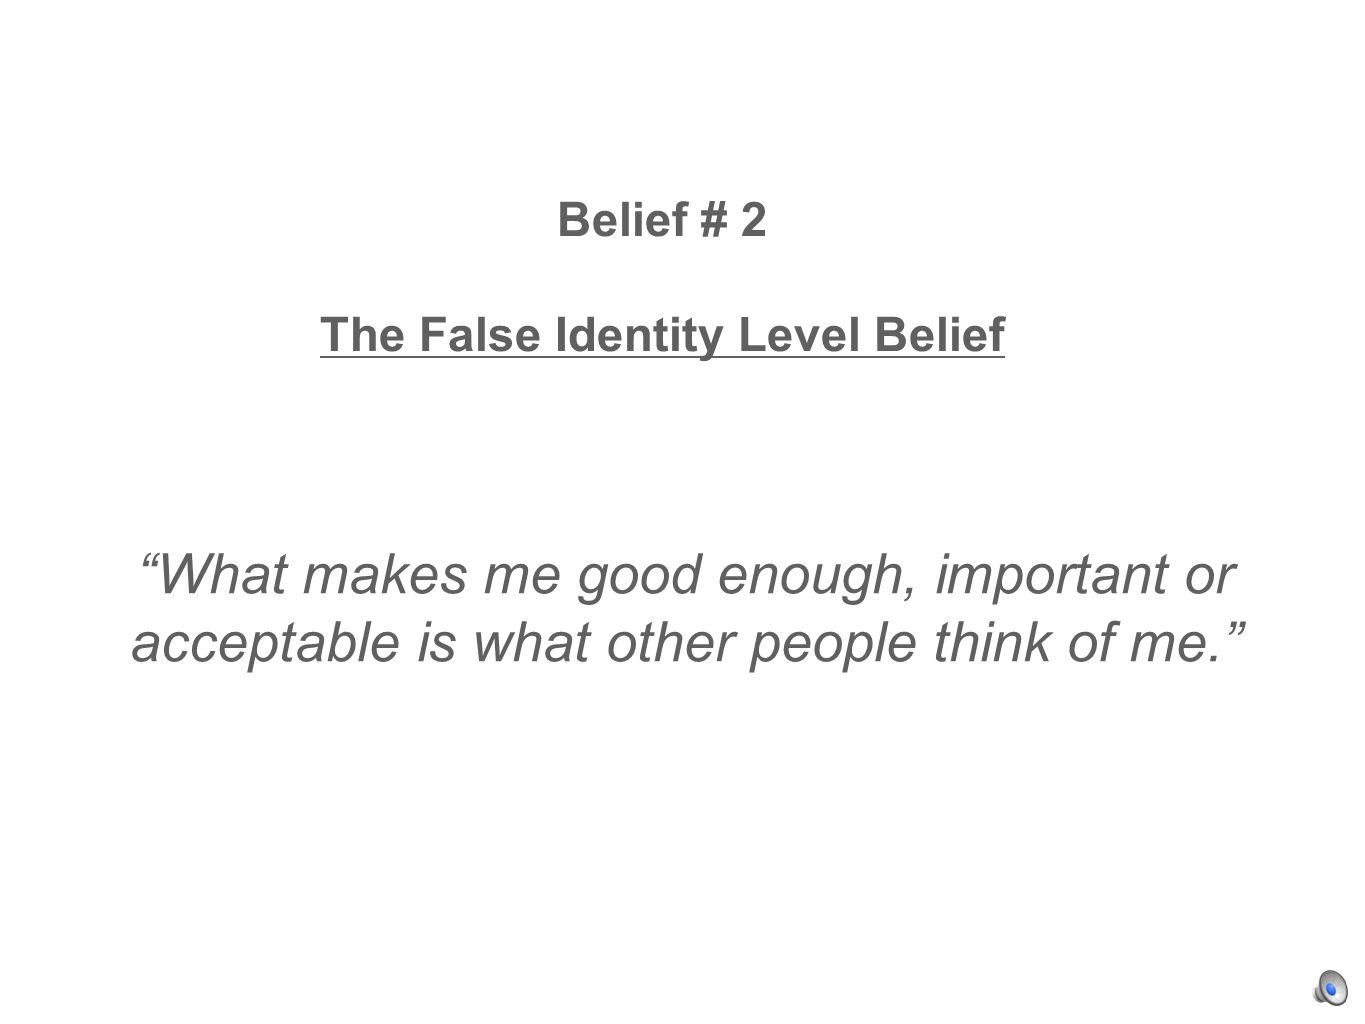 Belief # 2 The False Identity Level Belief What makes me good enough, important or acceptable is what other people think of me.